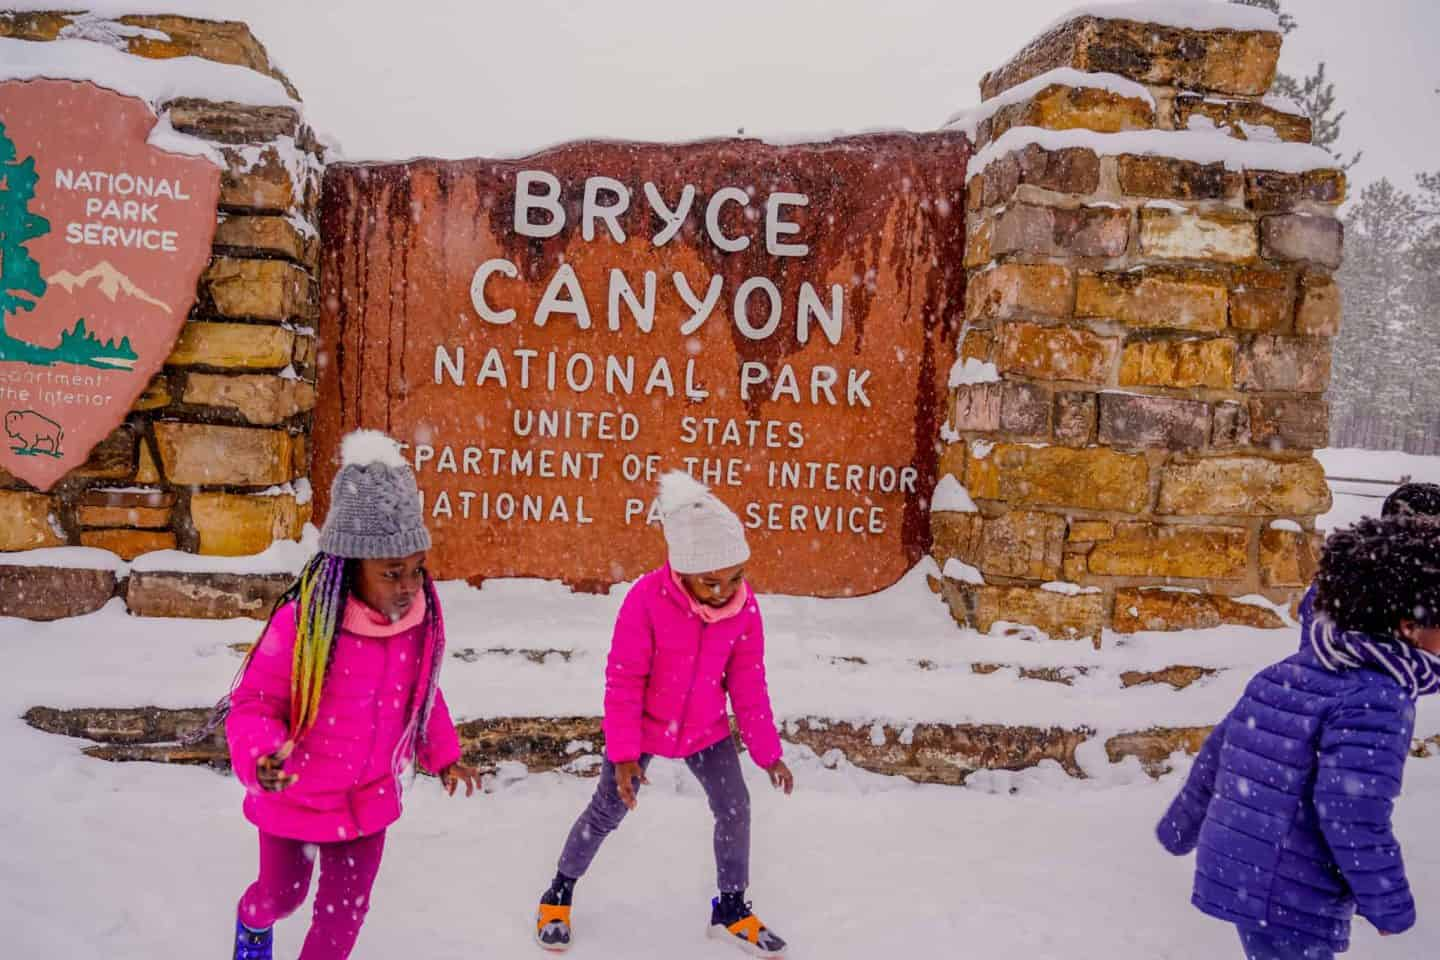 Children playing in front of the Bryce Canyon National Park sign.